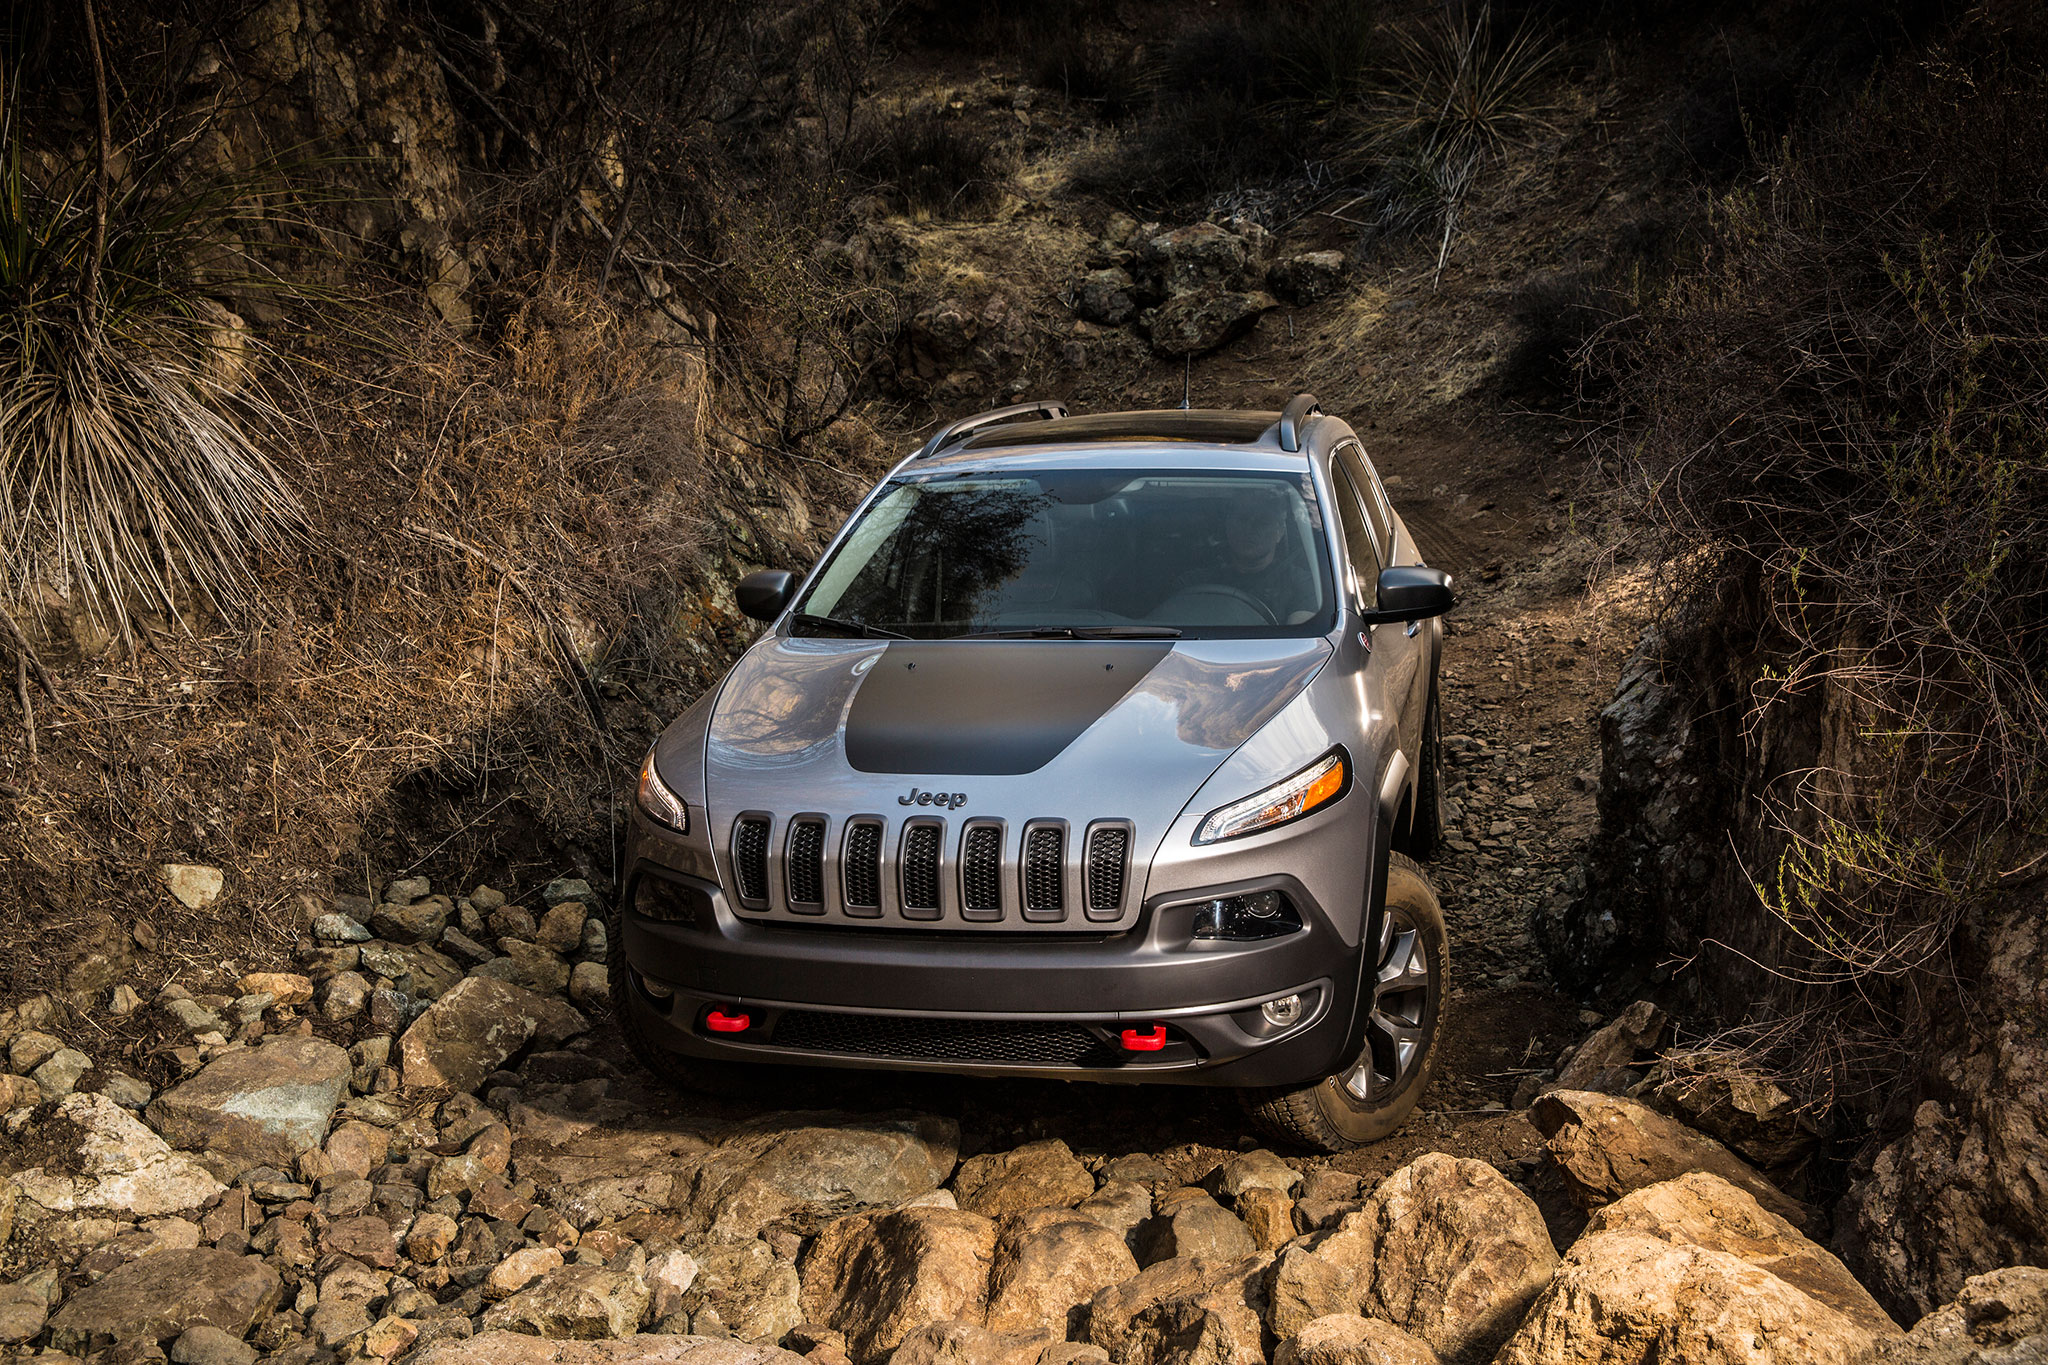 2014-Jeep-Cherokee-TrailHawk-front-view-offroad